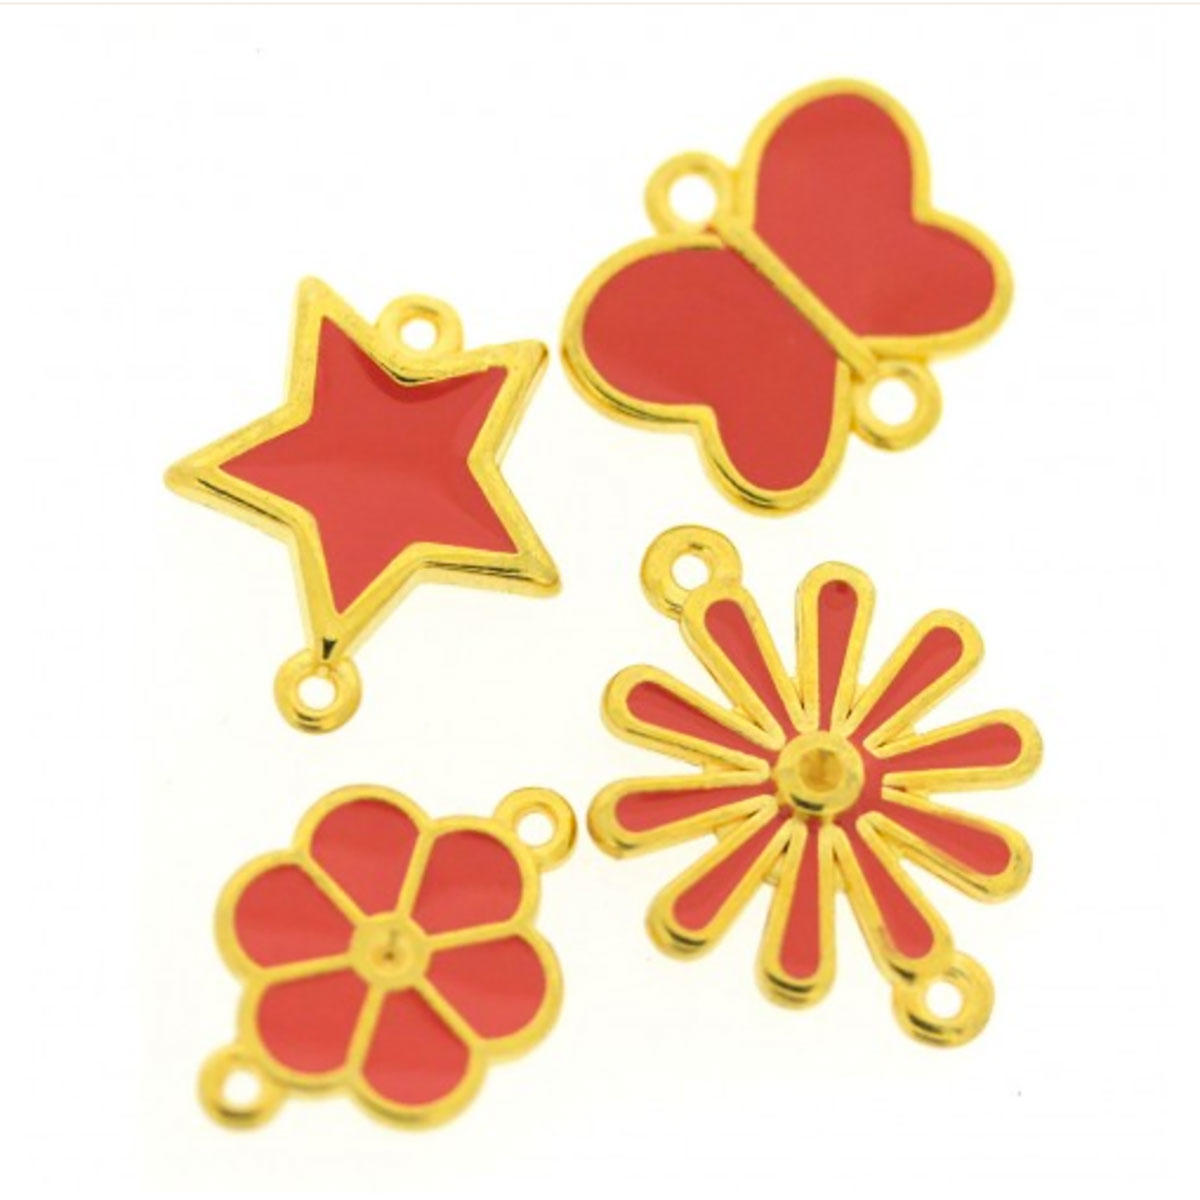 Coral Enamel Charm Set - 4 Pieces